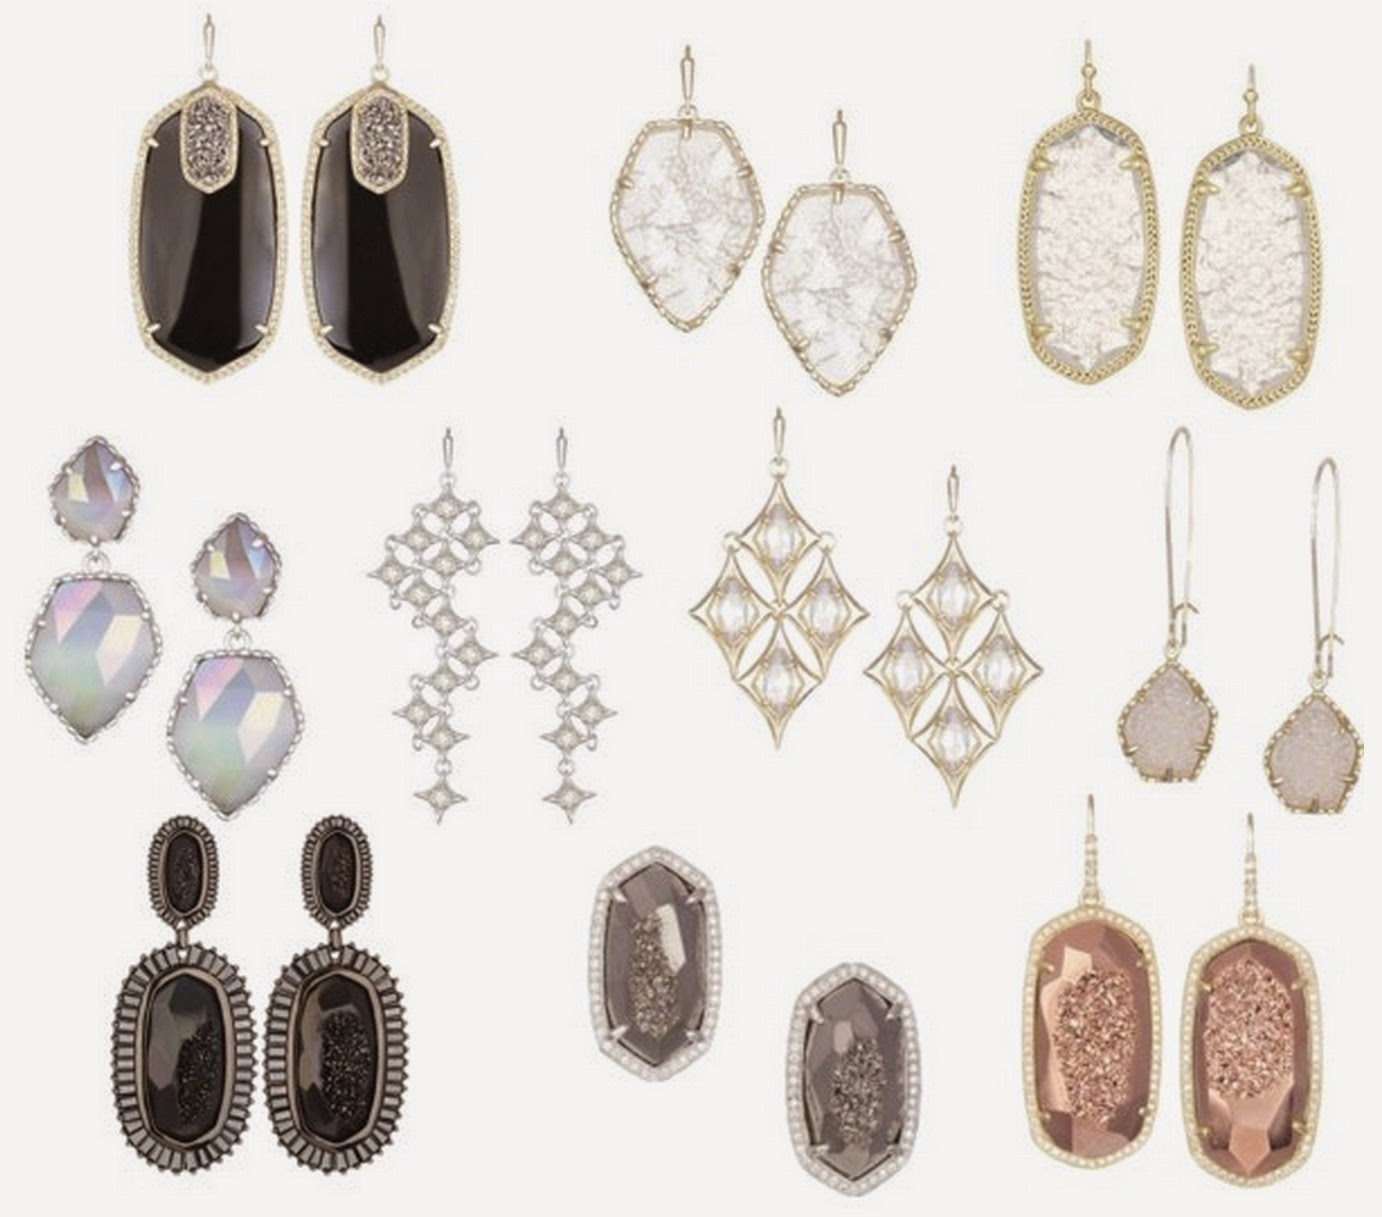 Live life in style picks trina turk elaine turner kendra scott quincy silver delicate earrings nova statement earrings cathy iridescent earrings taryn chandelier earrings arubaitofo Images